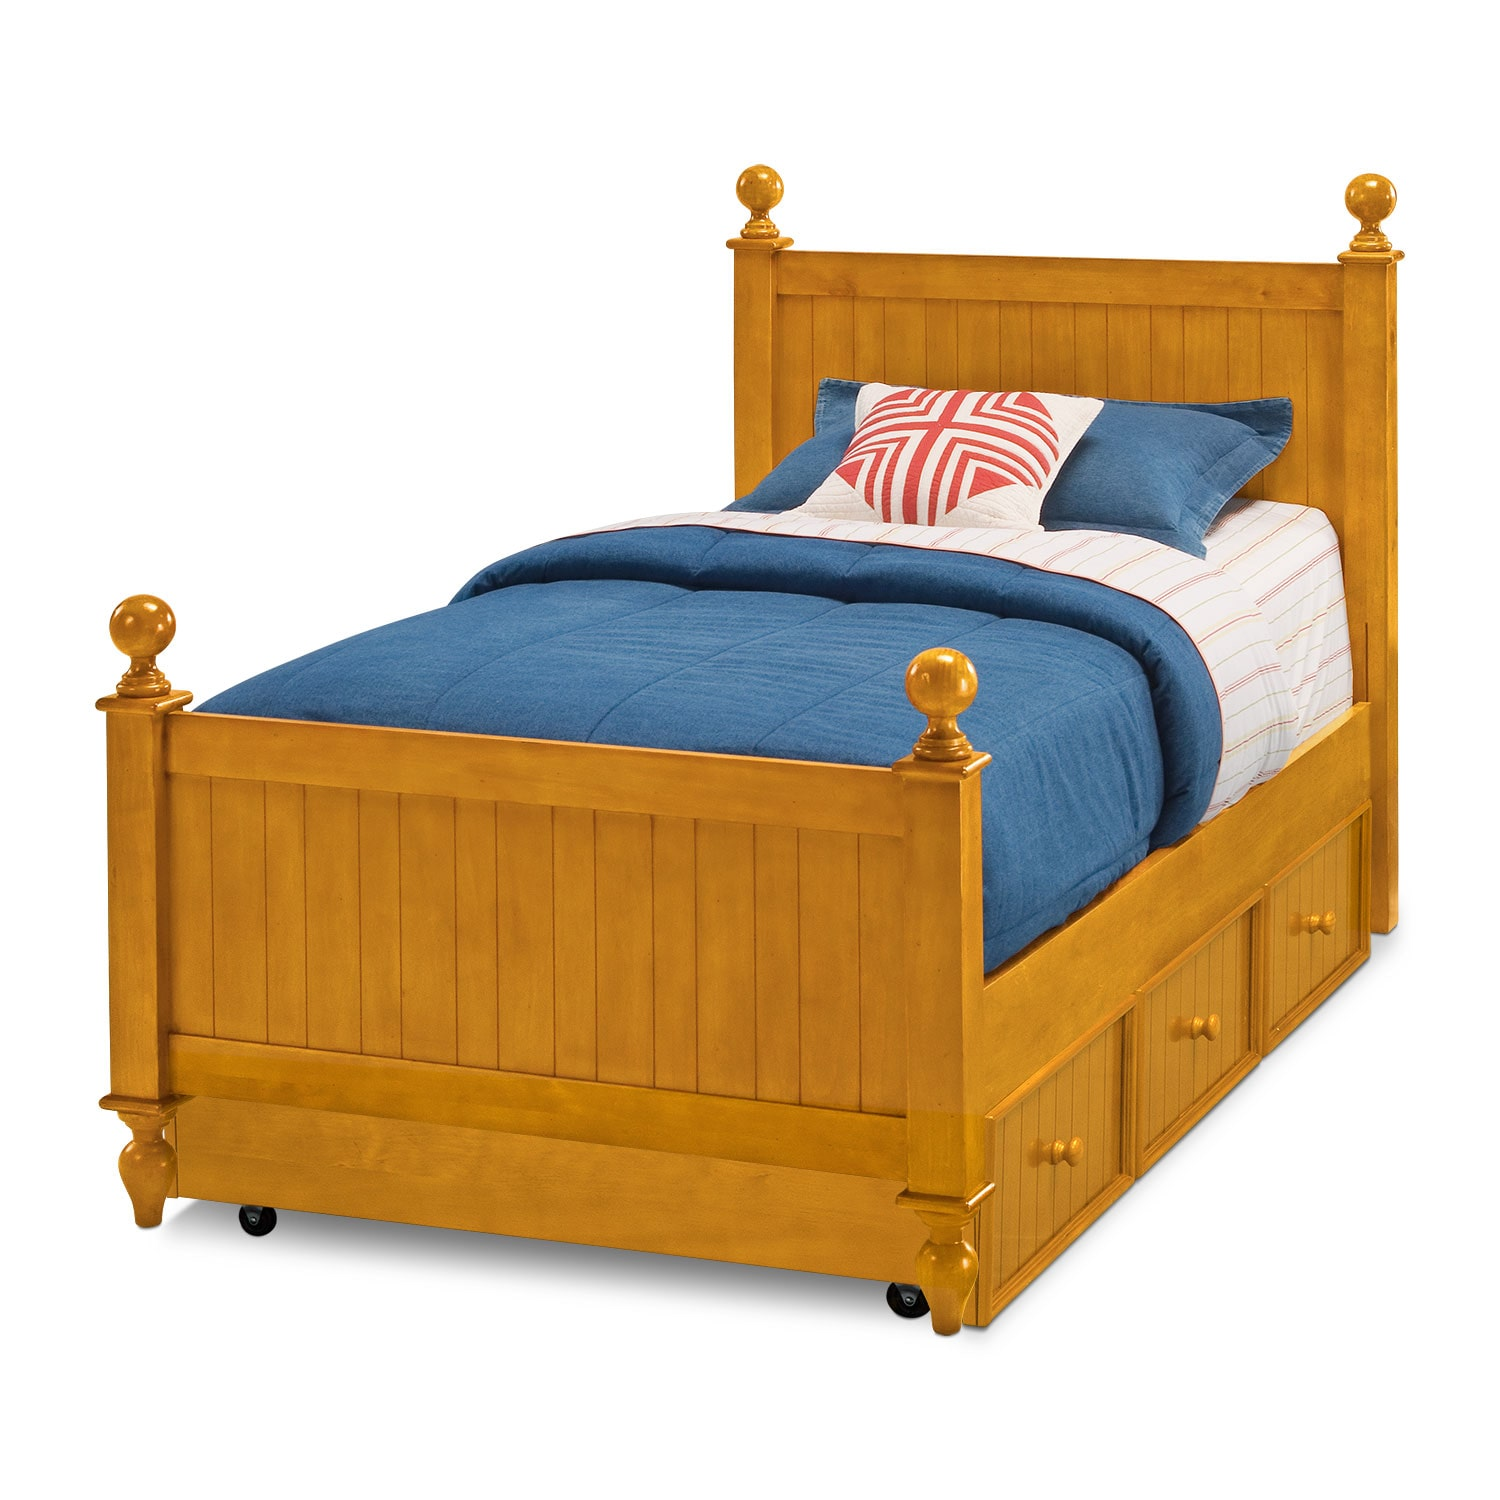 Kids Furniture - Colorworks Twin Bed with Trundle - Honey Pine